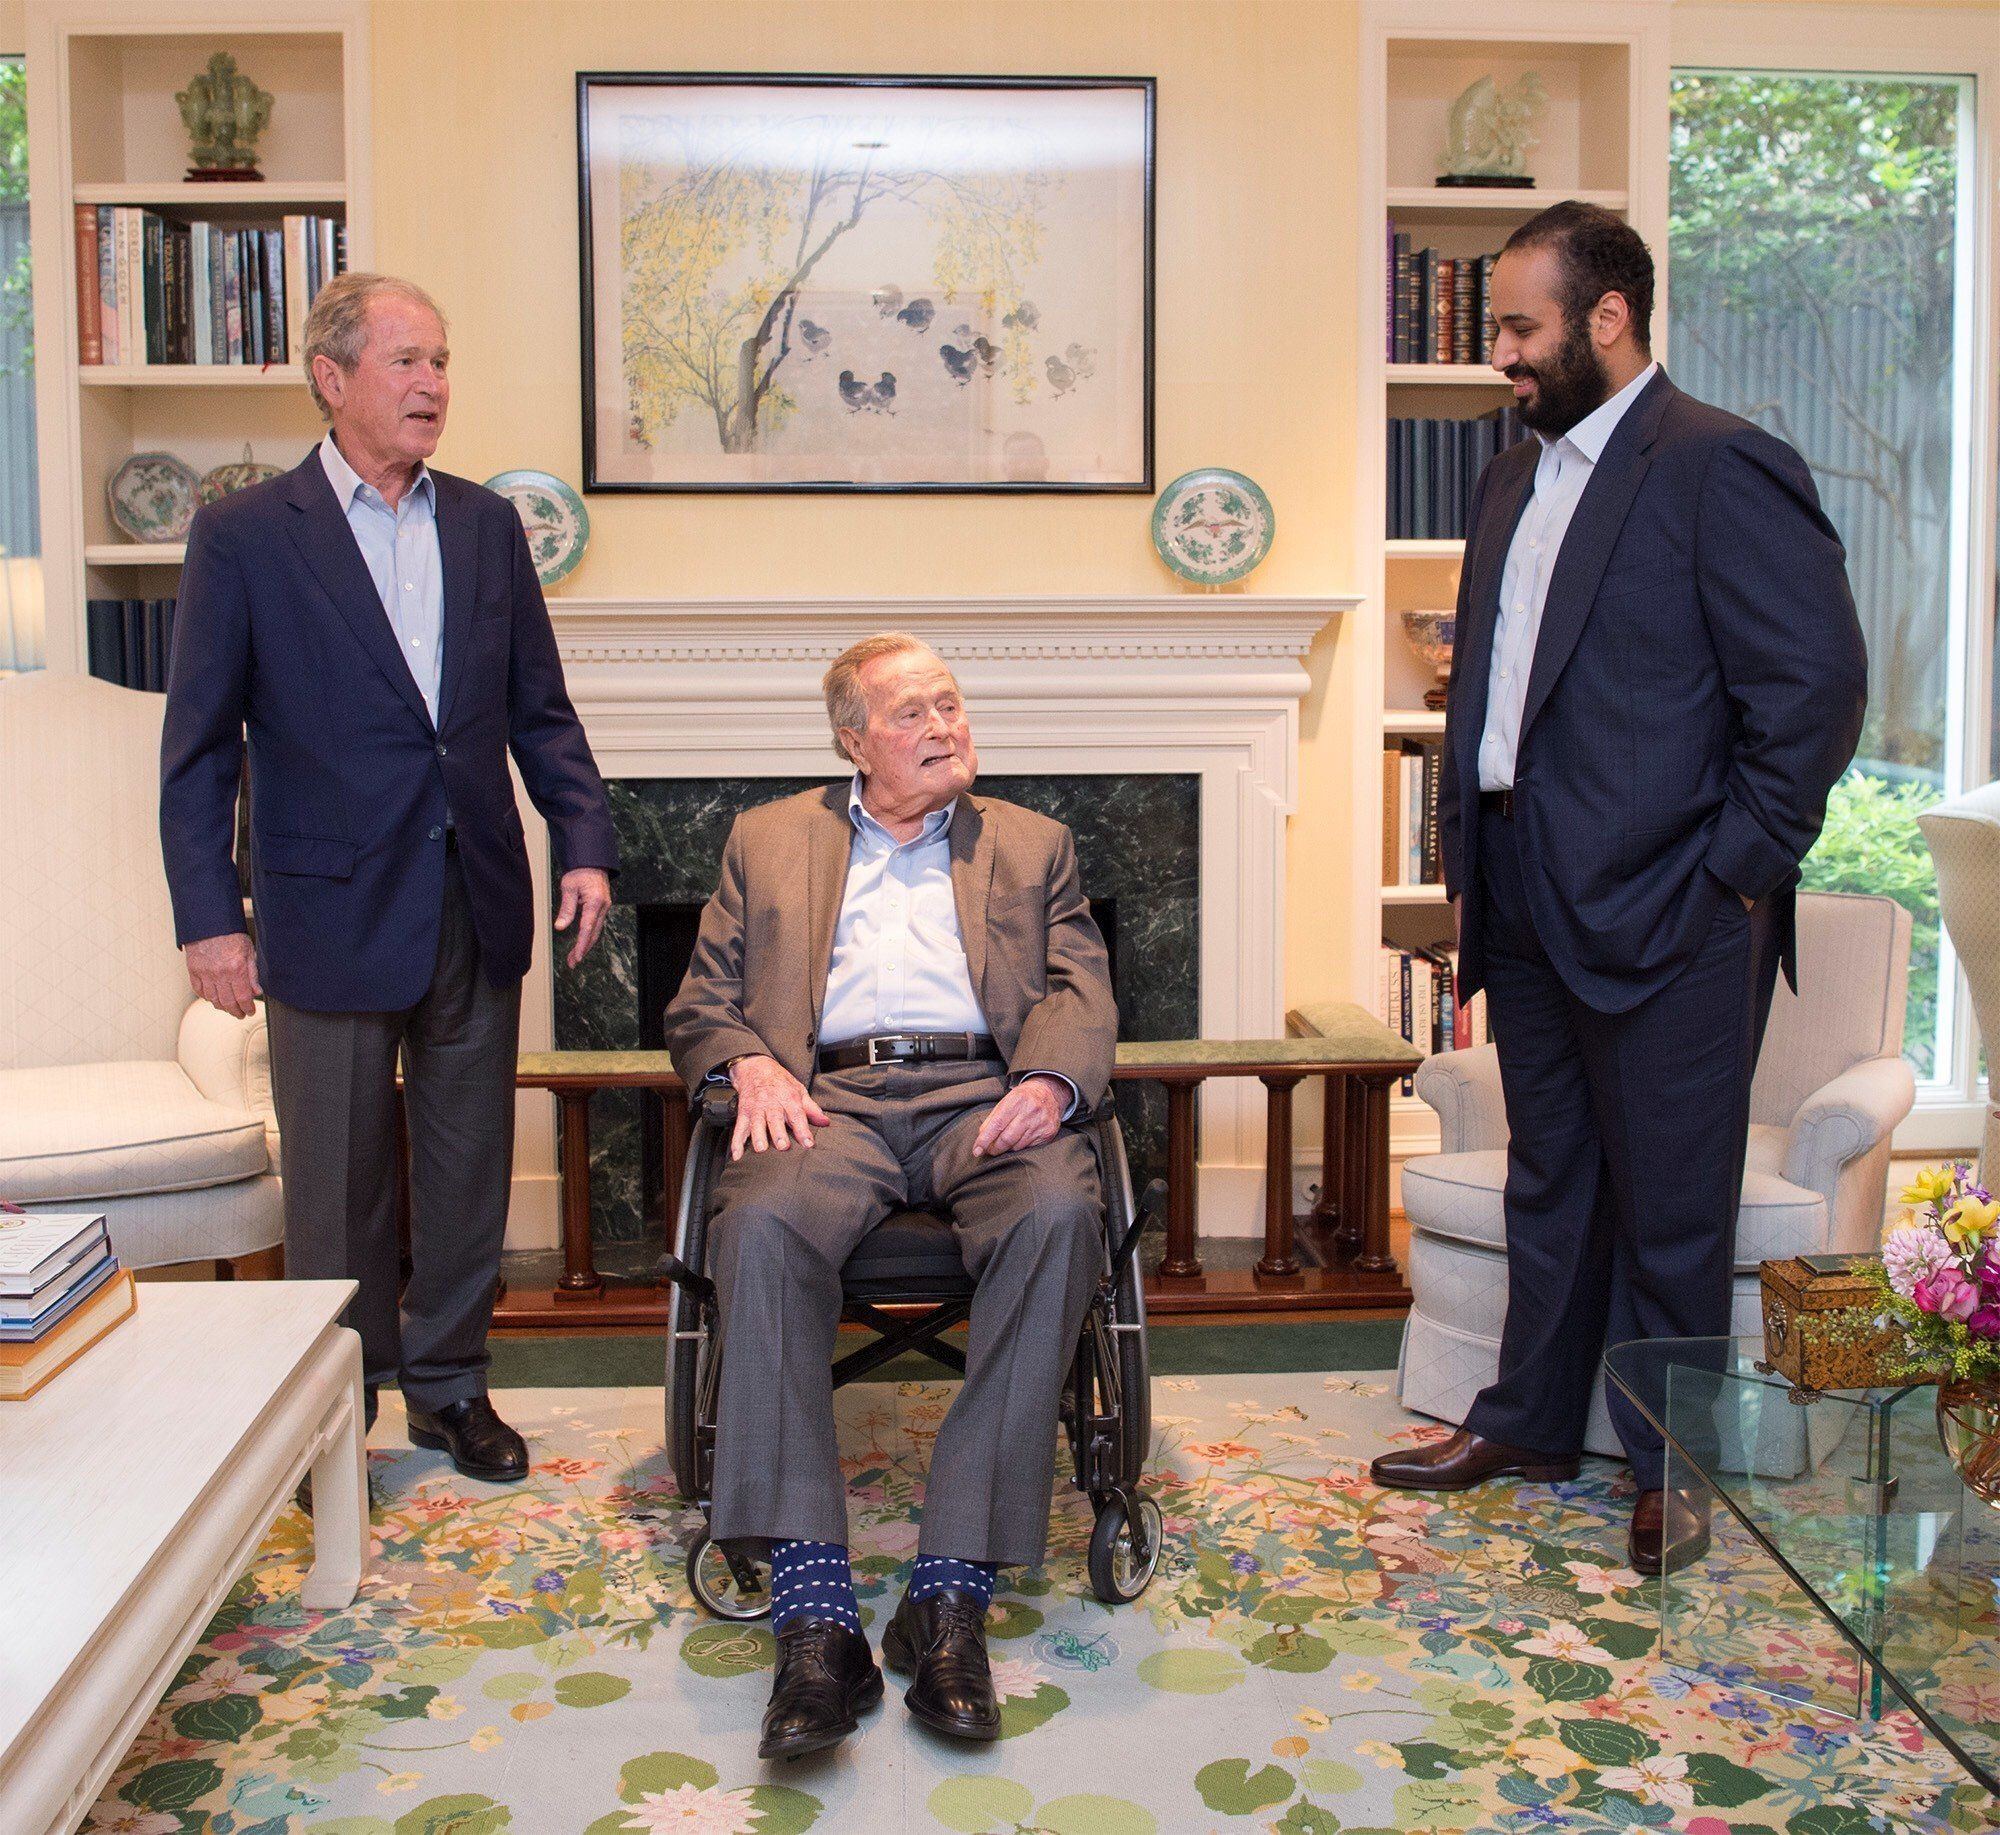 George H.W. Bush Hospitalized For 'Low Blood Pressure And Fatigue'